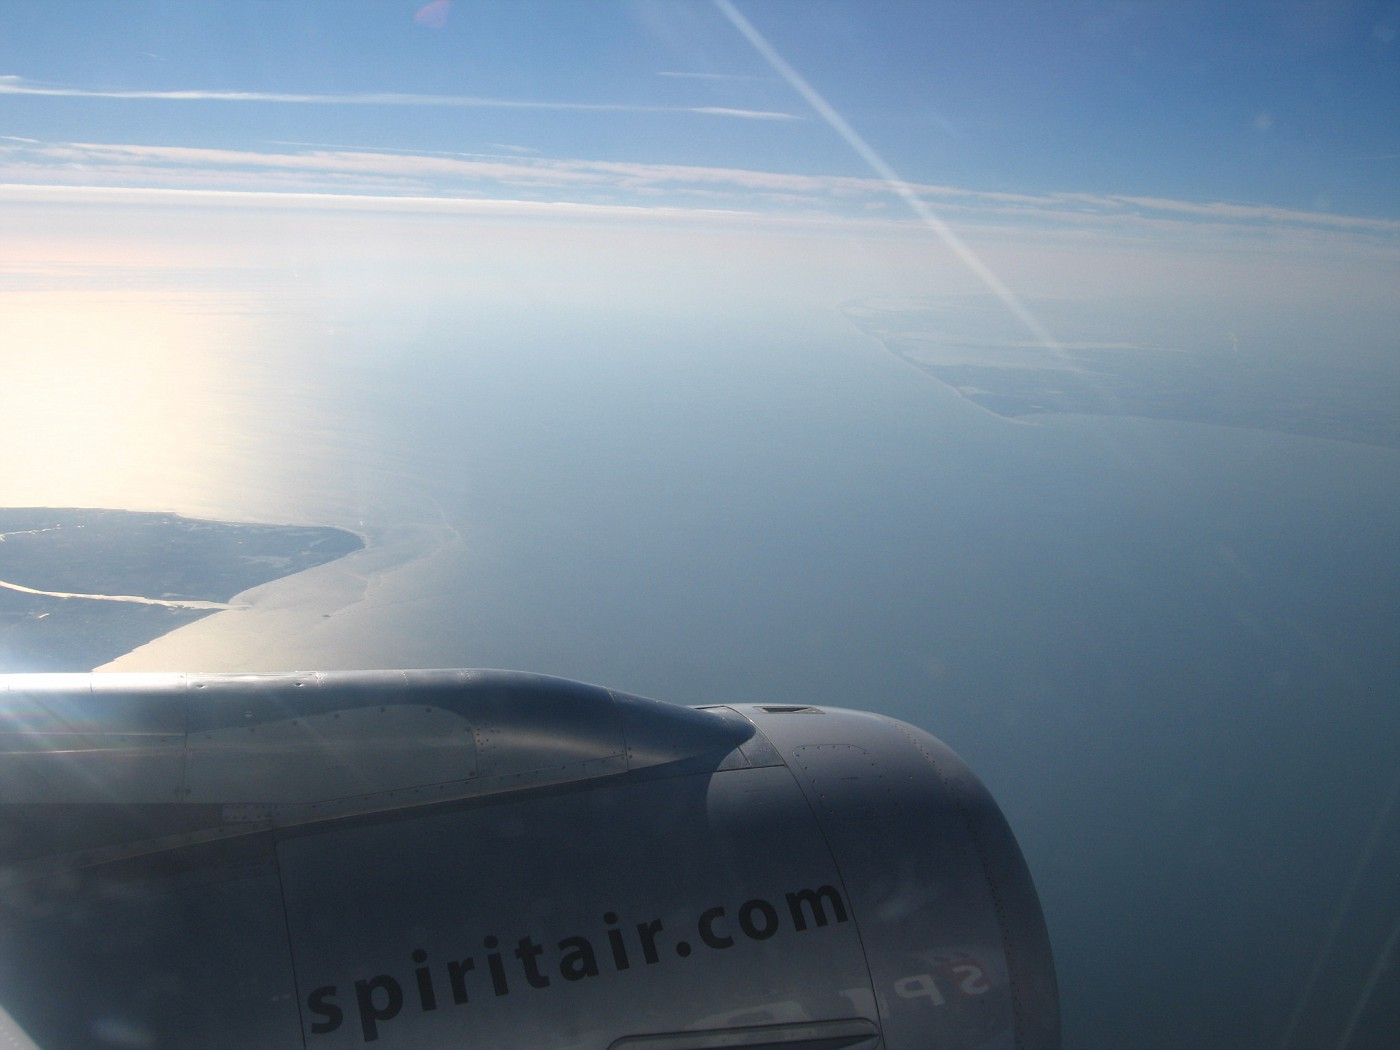 This view is leaving Cape May, New Jersey and flying towards Lewes, Deleware on the right...